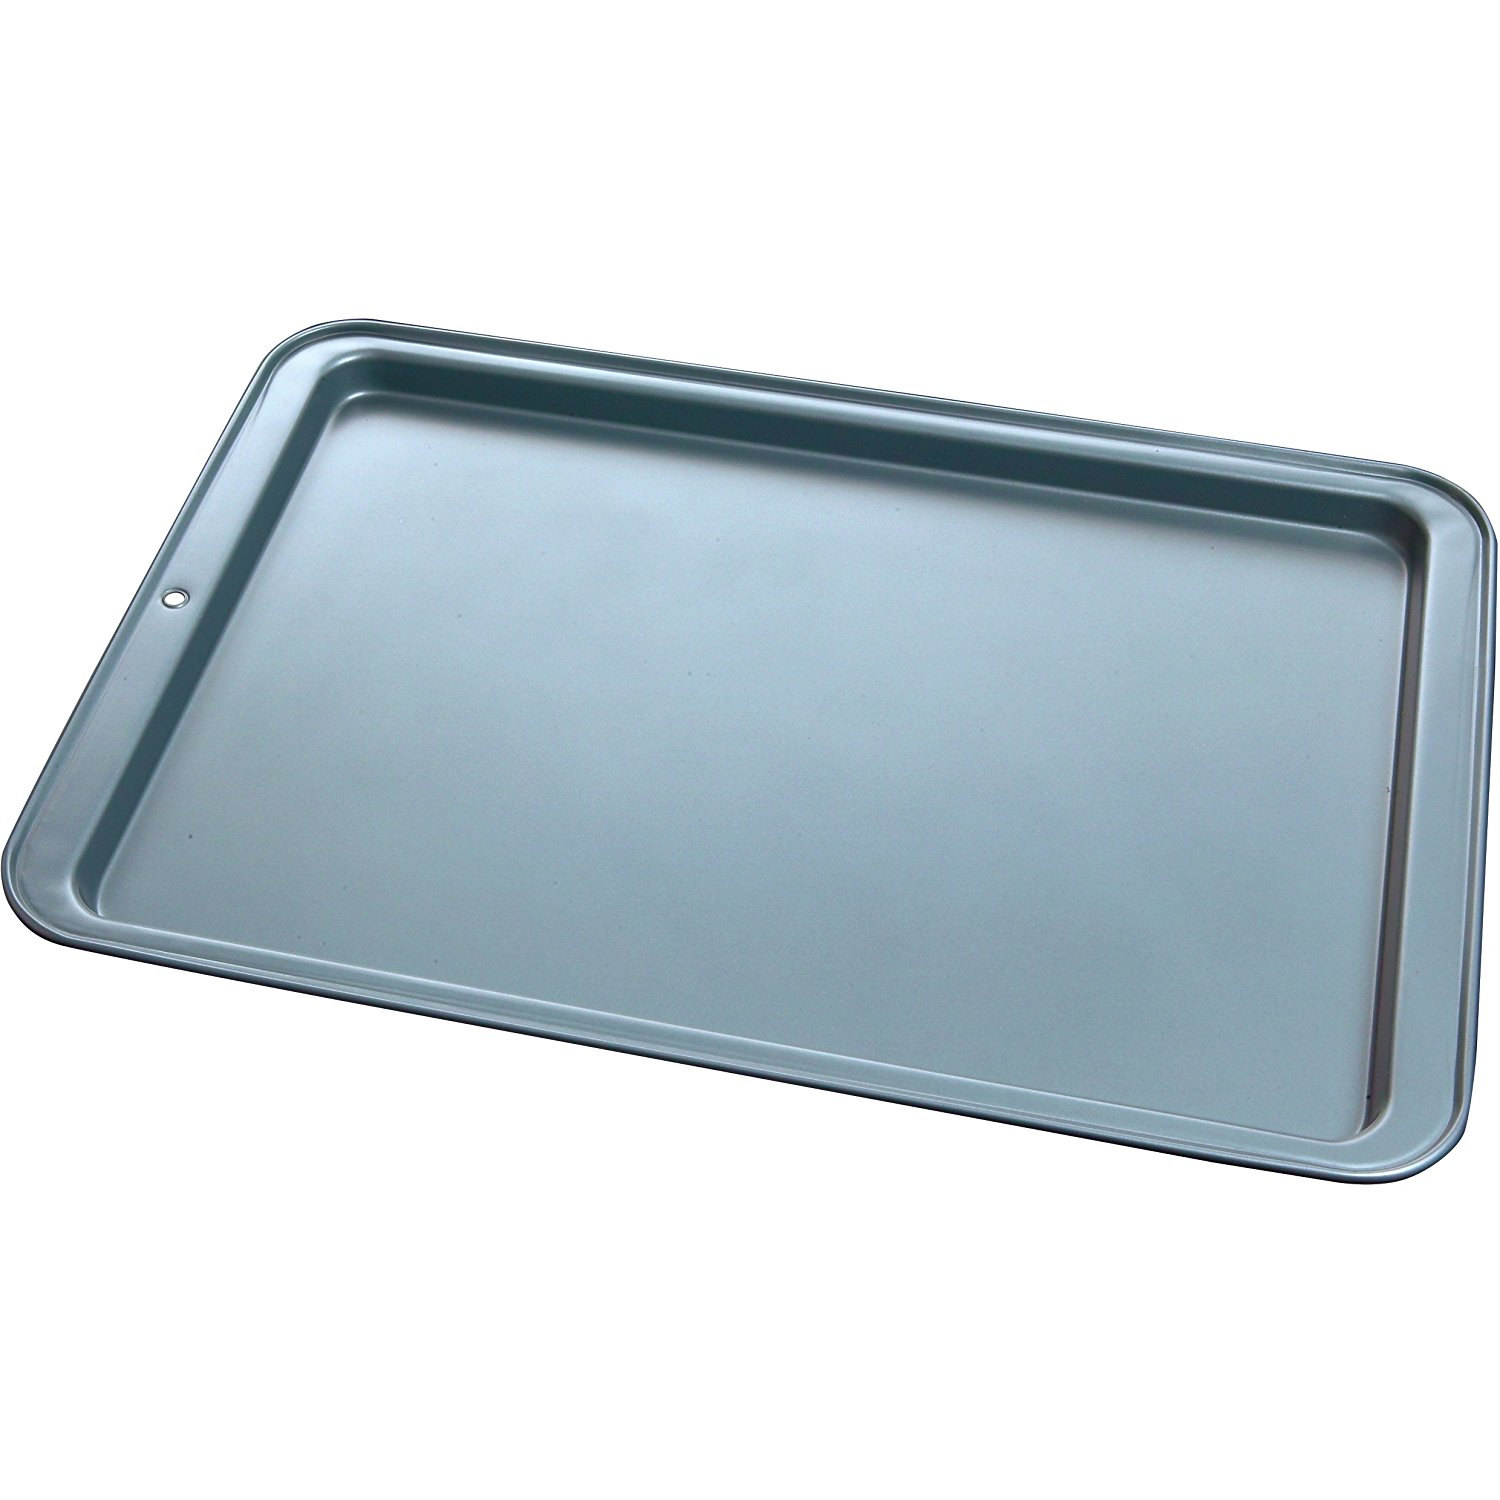 "Brand New Preferred Non-Stick 11 Inch x 17 Inch x .75 Inch Jelly Roll Cookie Pan 11"" x 17\ by"